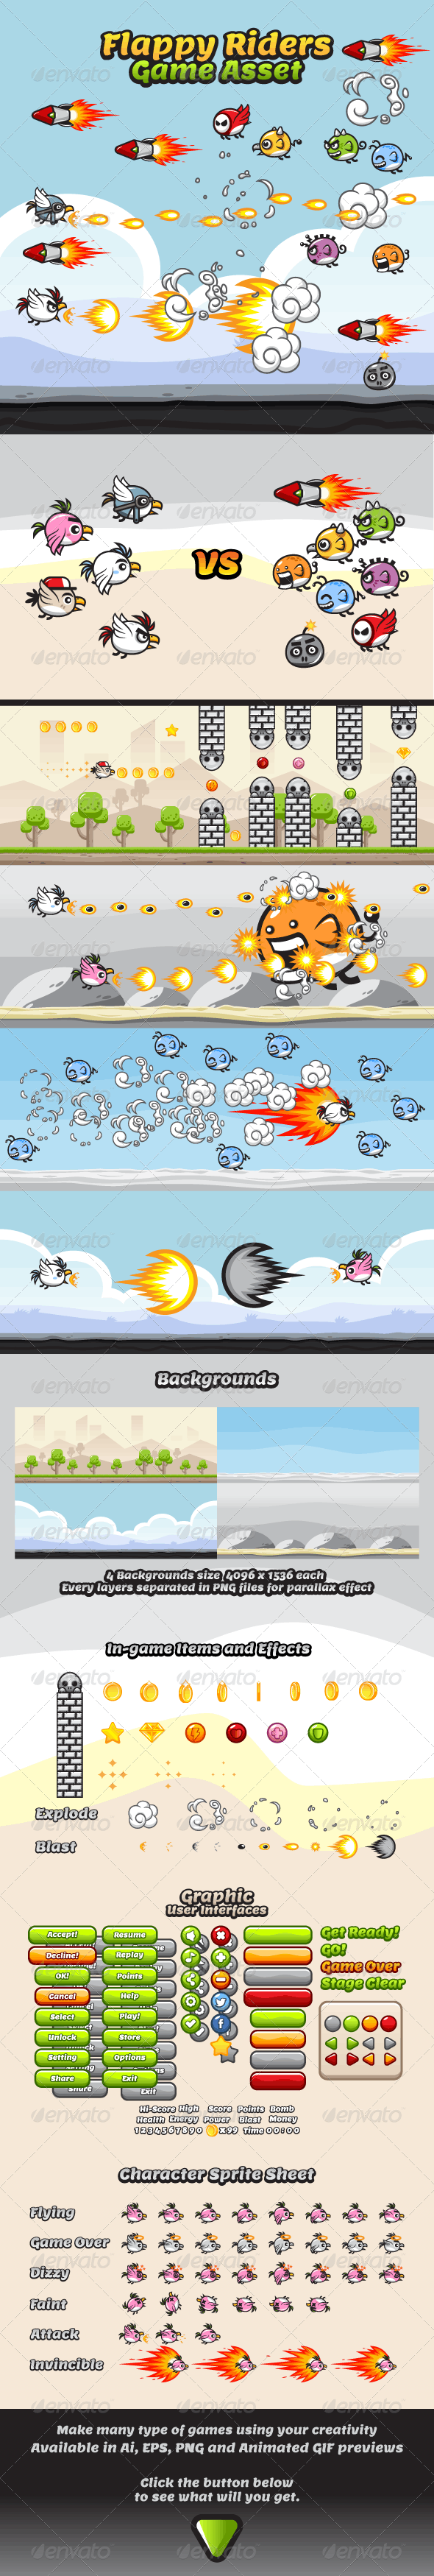 Game Asset - Flappy Rider Sprite Sheets - Game Kits Game Assets